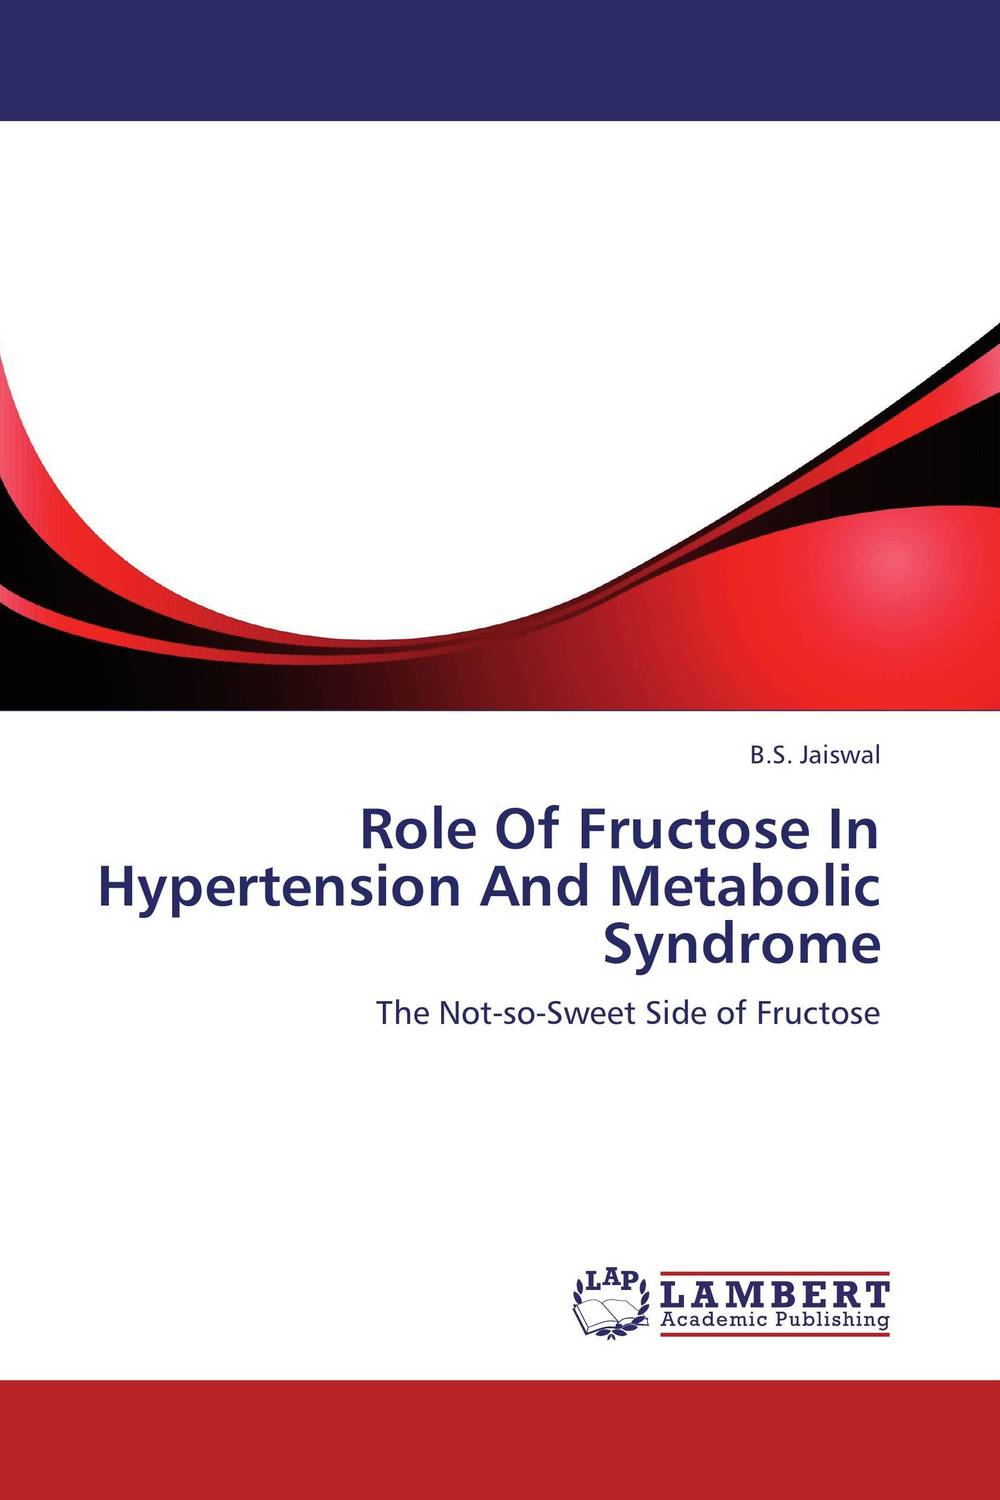 Role Of Fructose In Hypertension And Metabolic Syndrome like bug juice on a burger